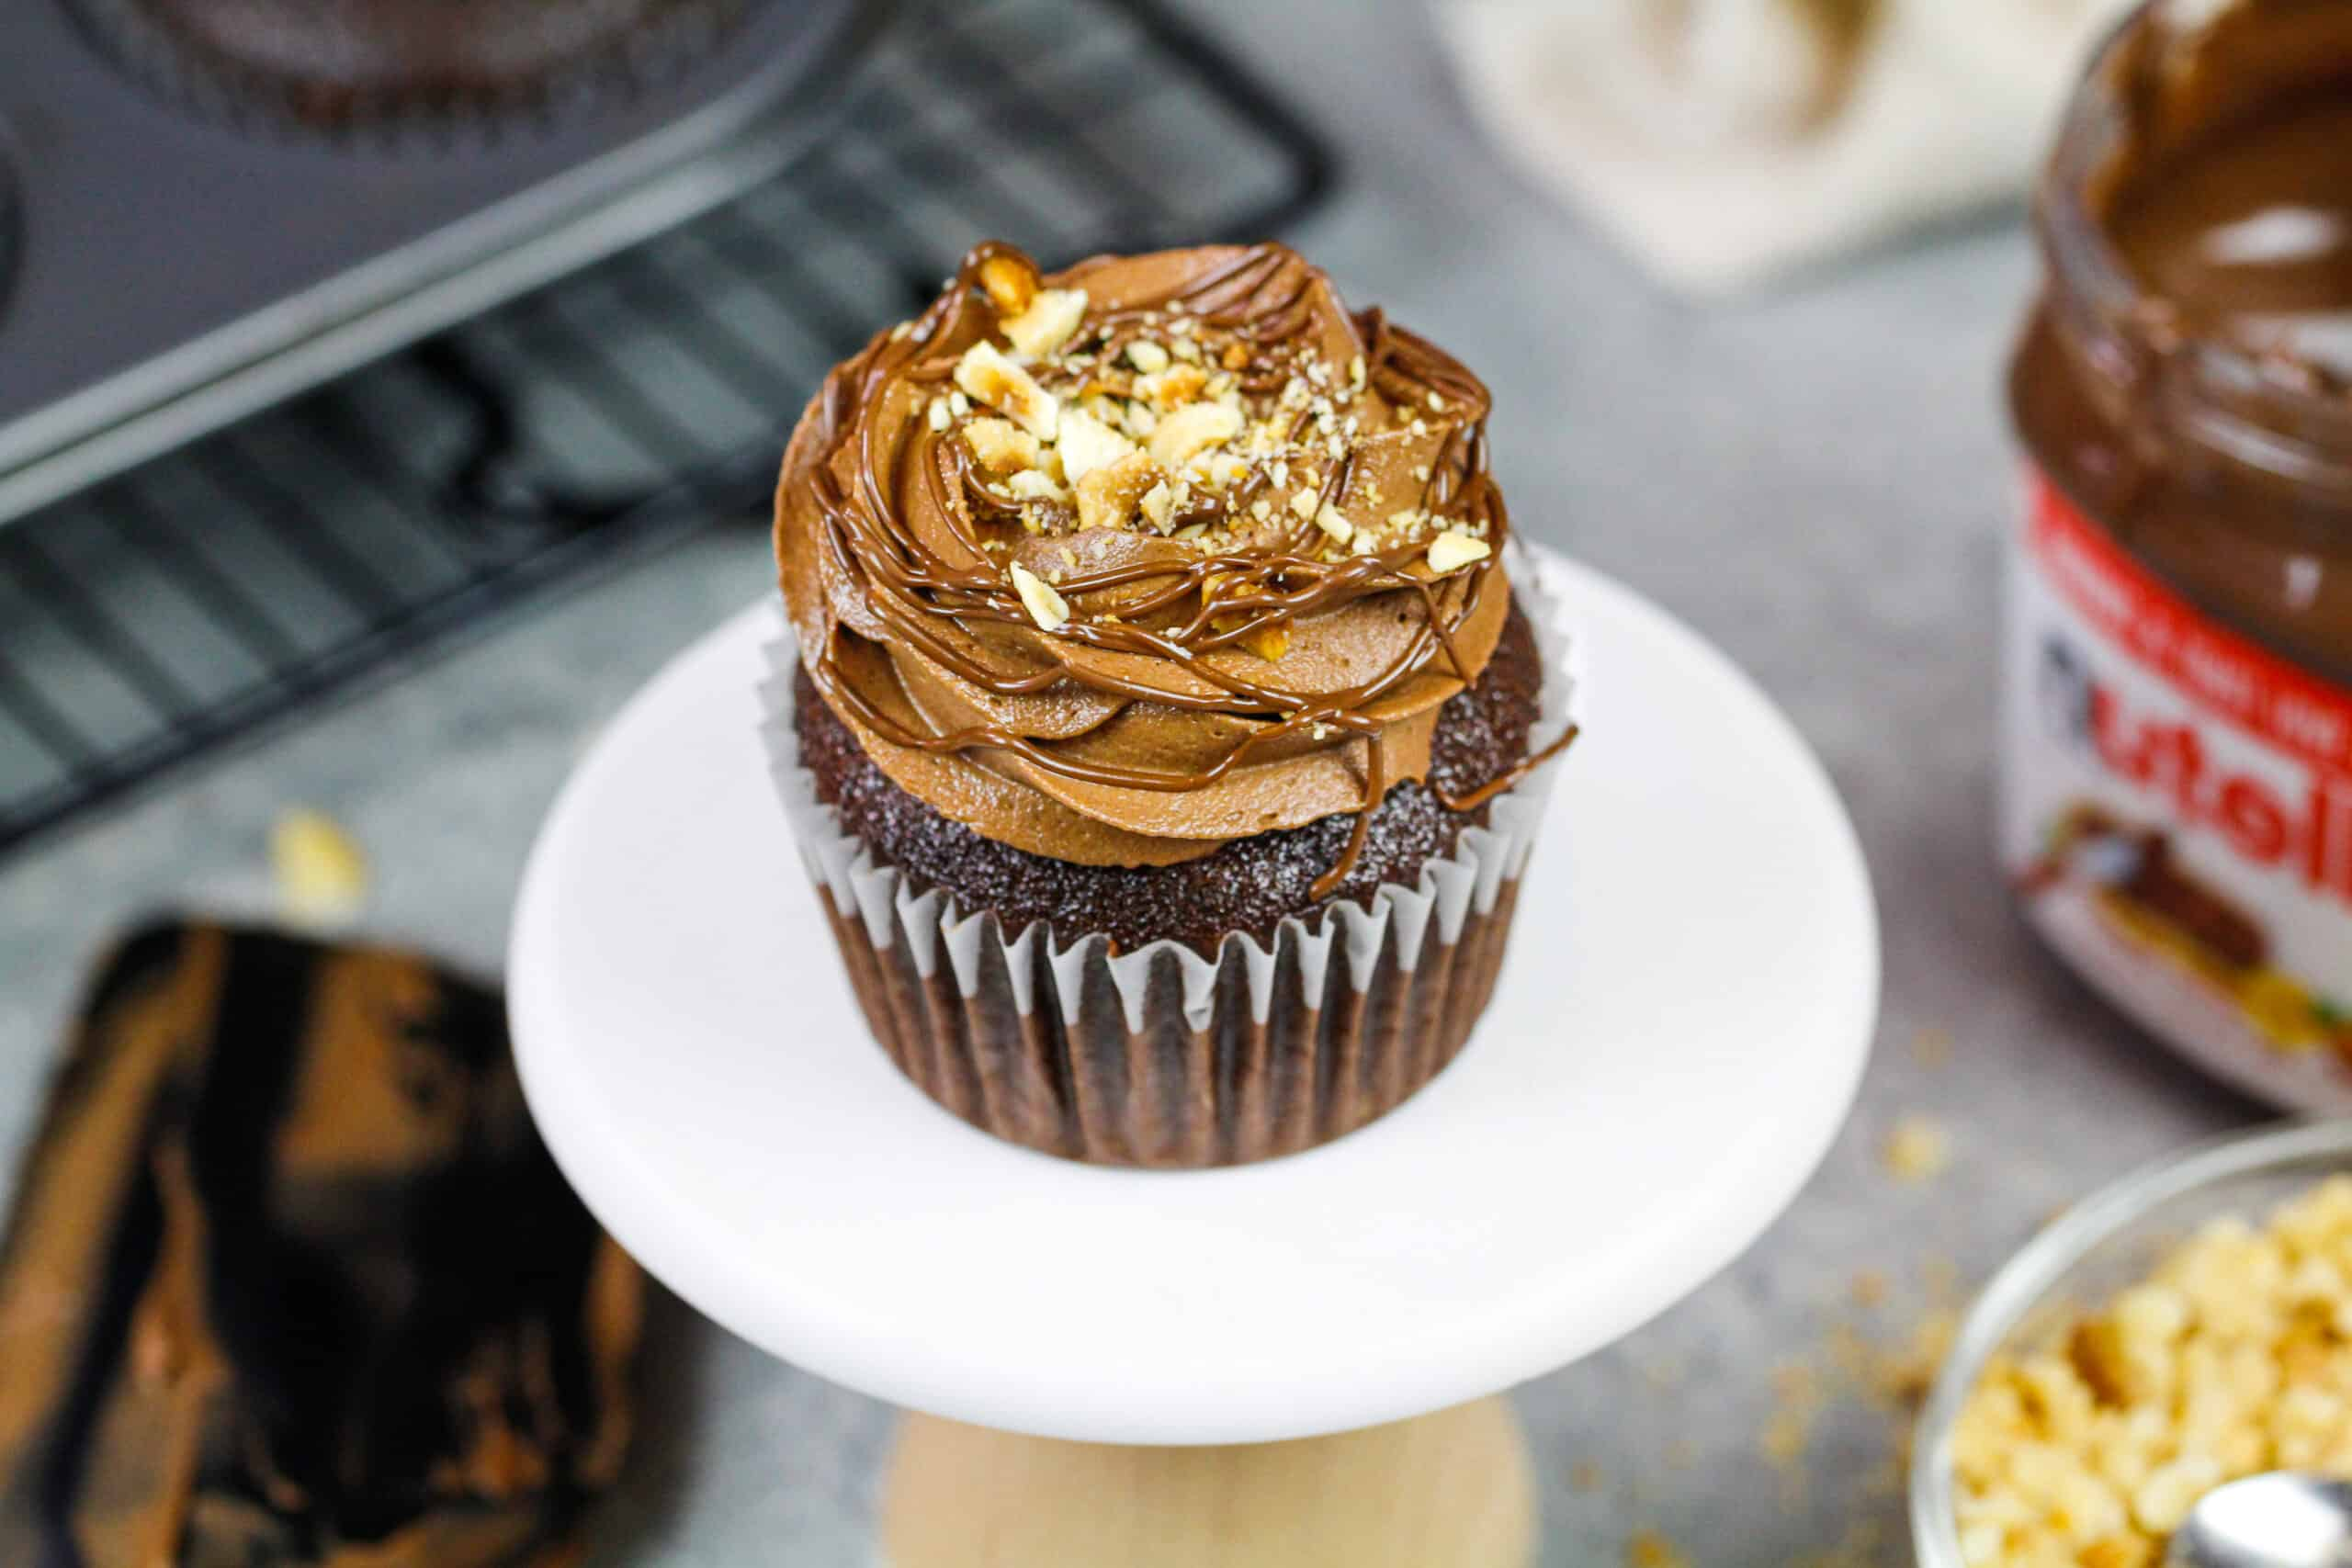 image of a pretty chocolate nutella cupcake decorated and placed on a cute little cupcake stand